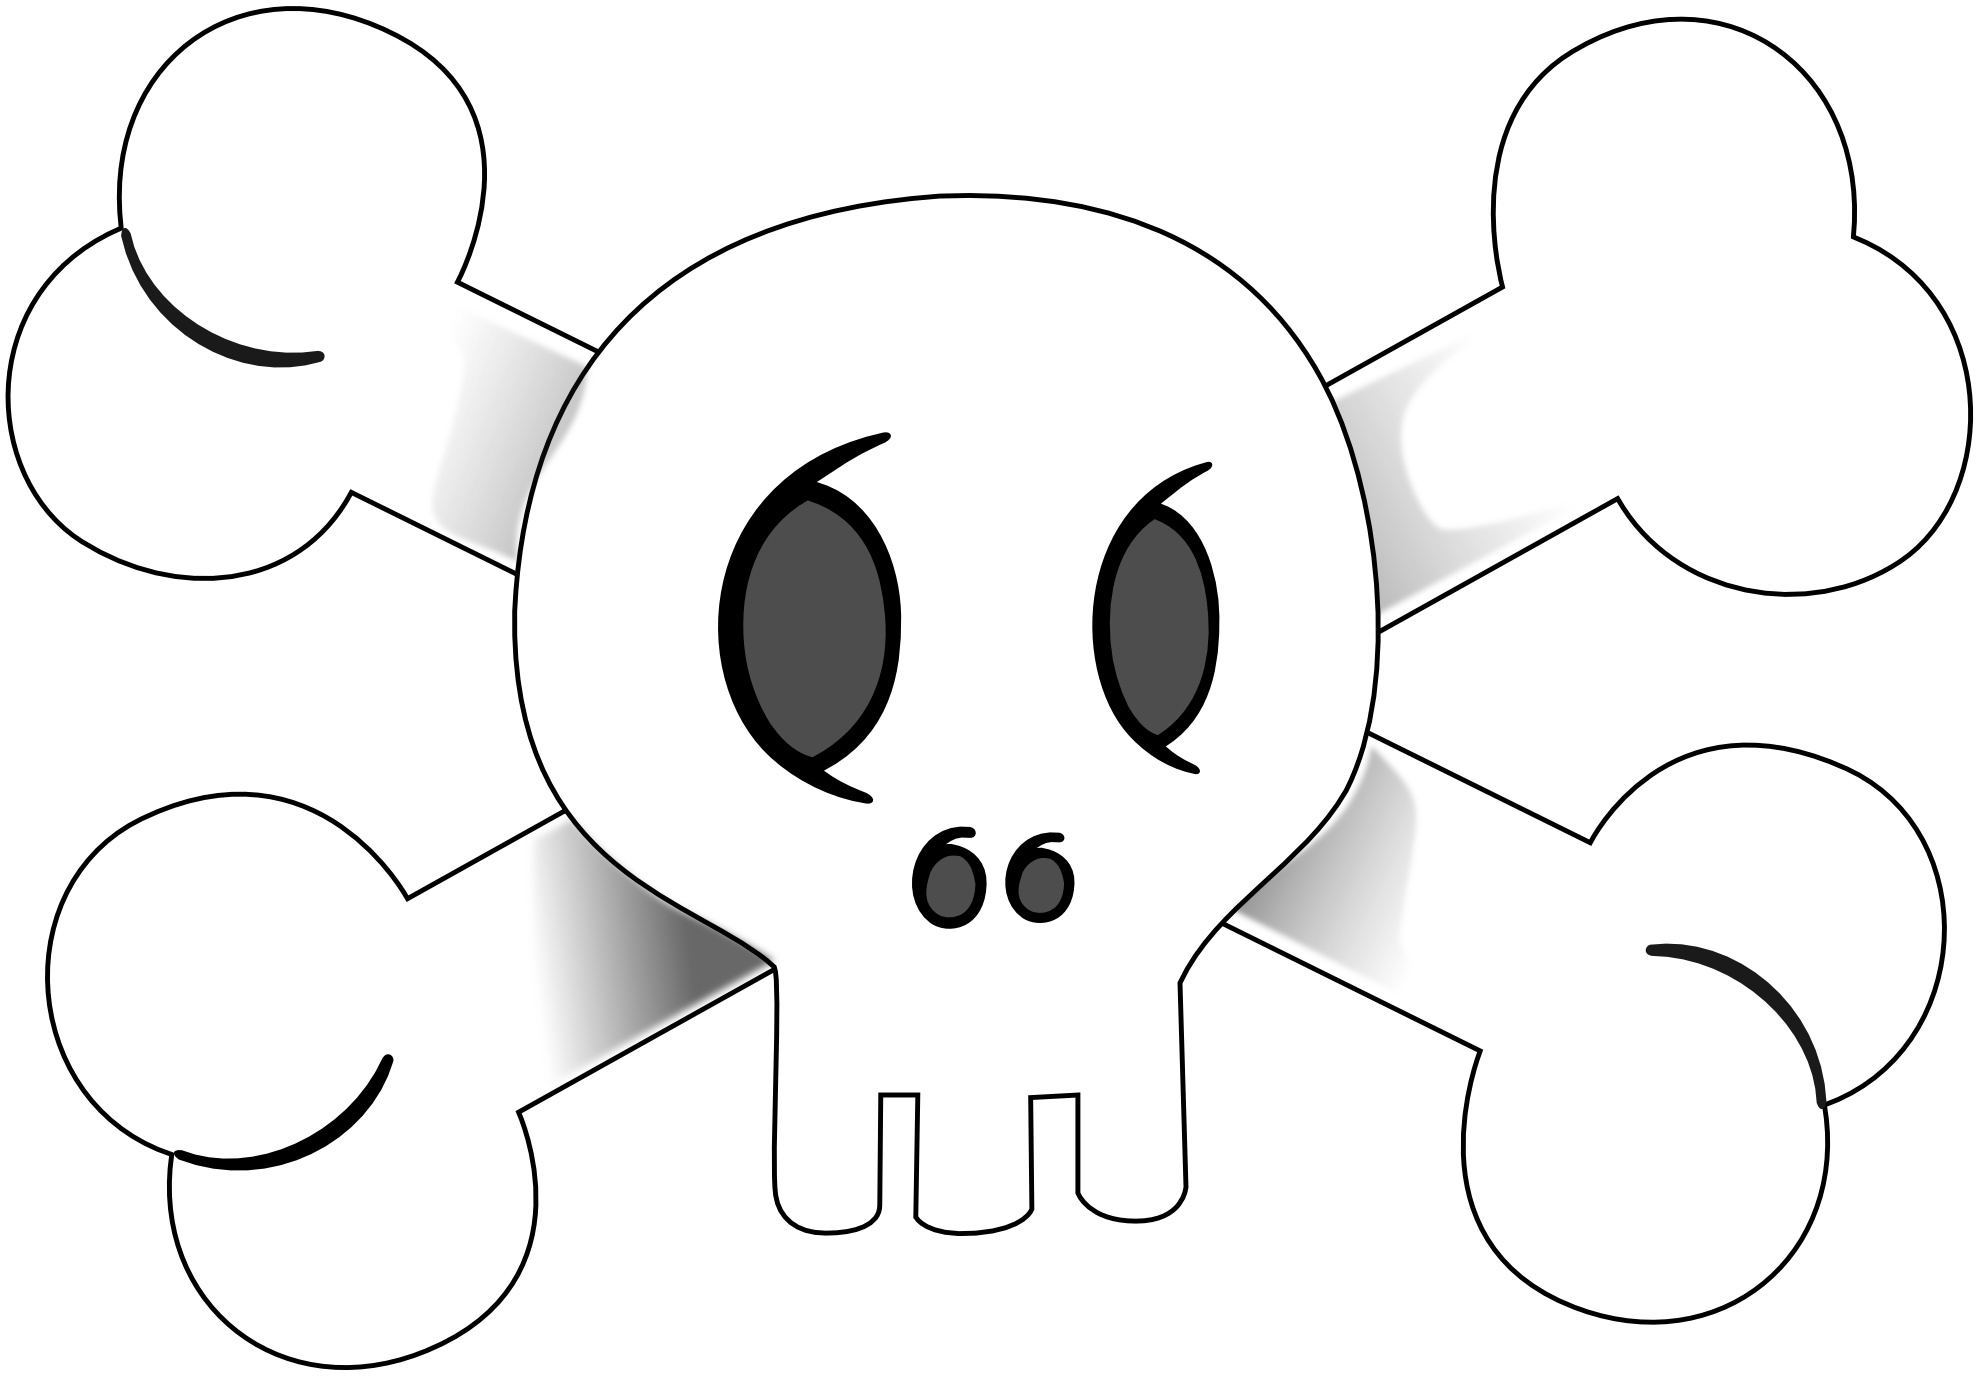 Pirate Flag Clipart Black And White-pirate flag clipart black and white-3